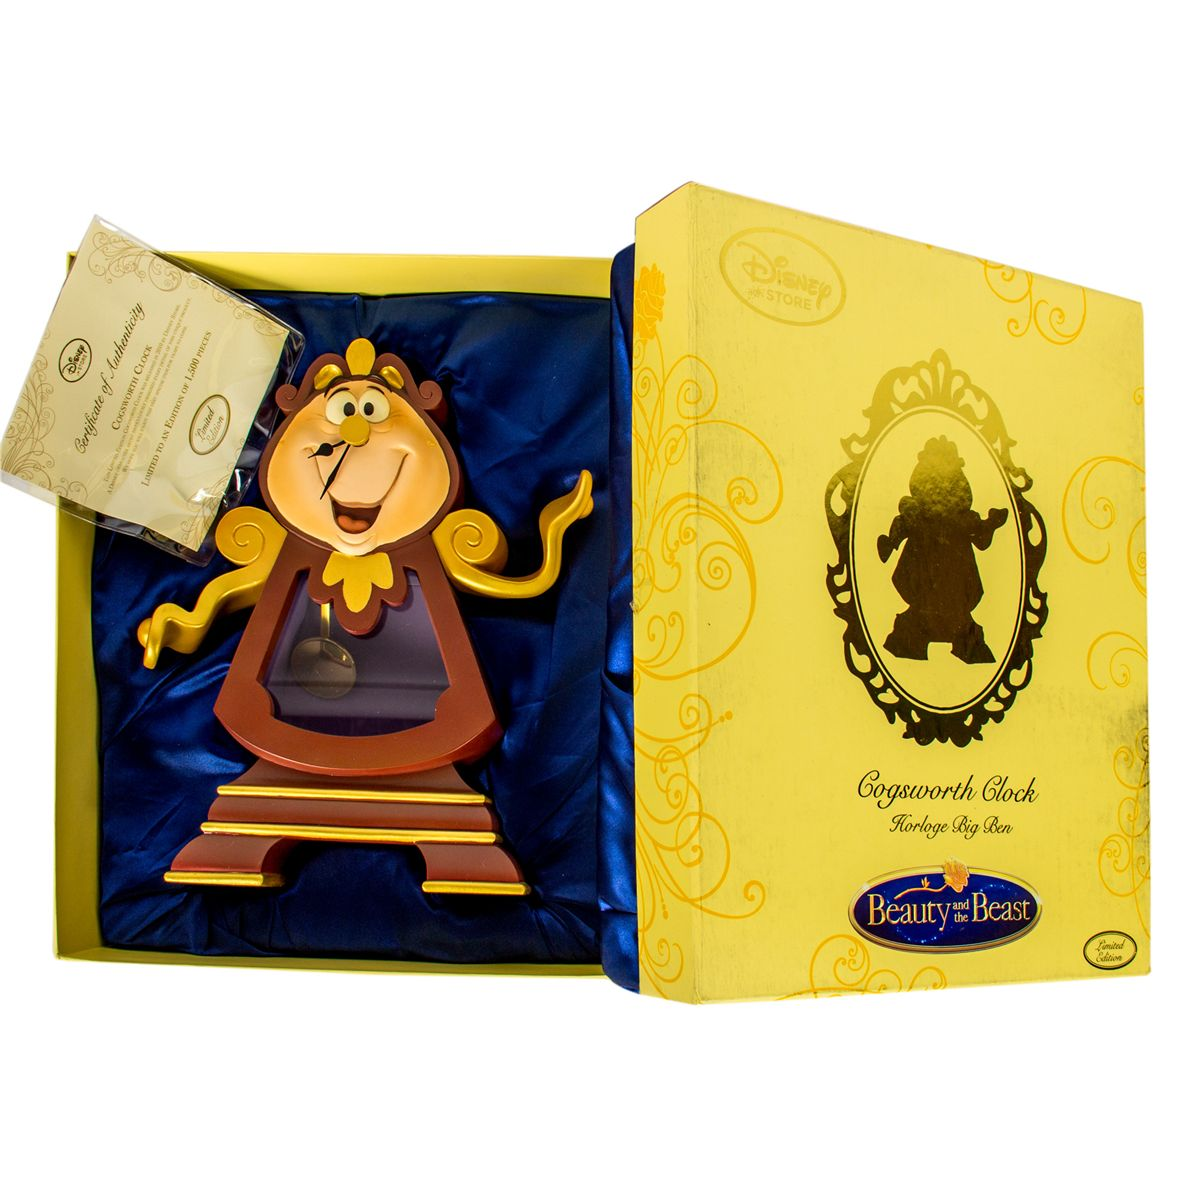 Limited Edition Cogsworth Clock Statue From Beauty The Beast